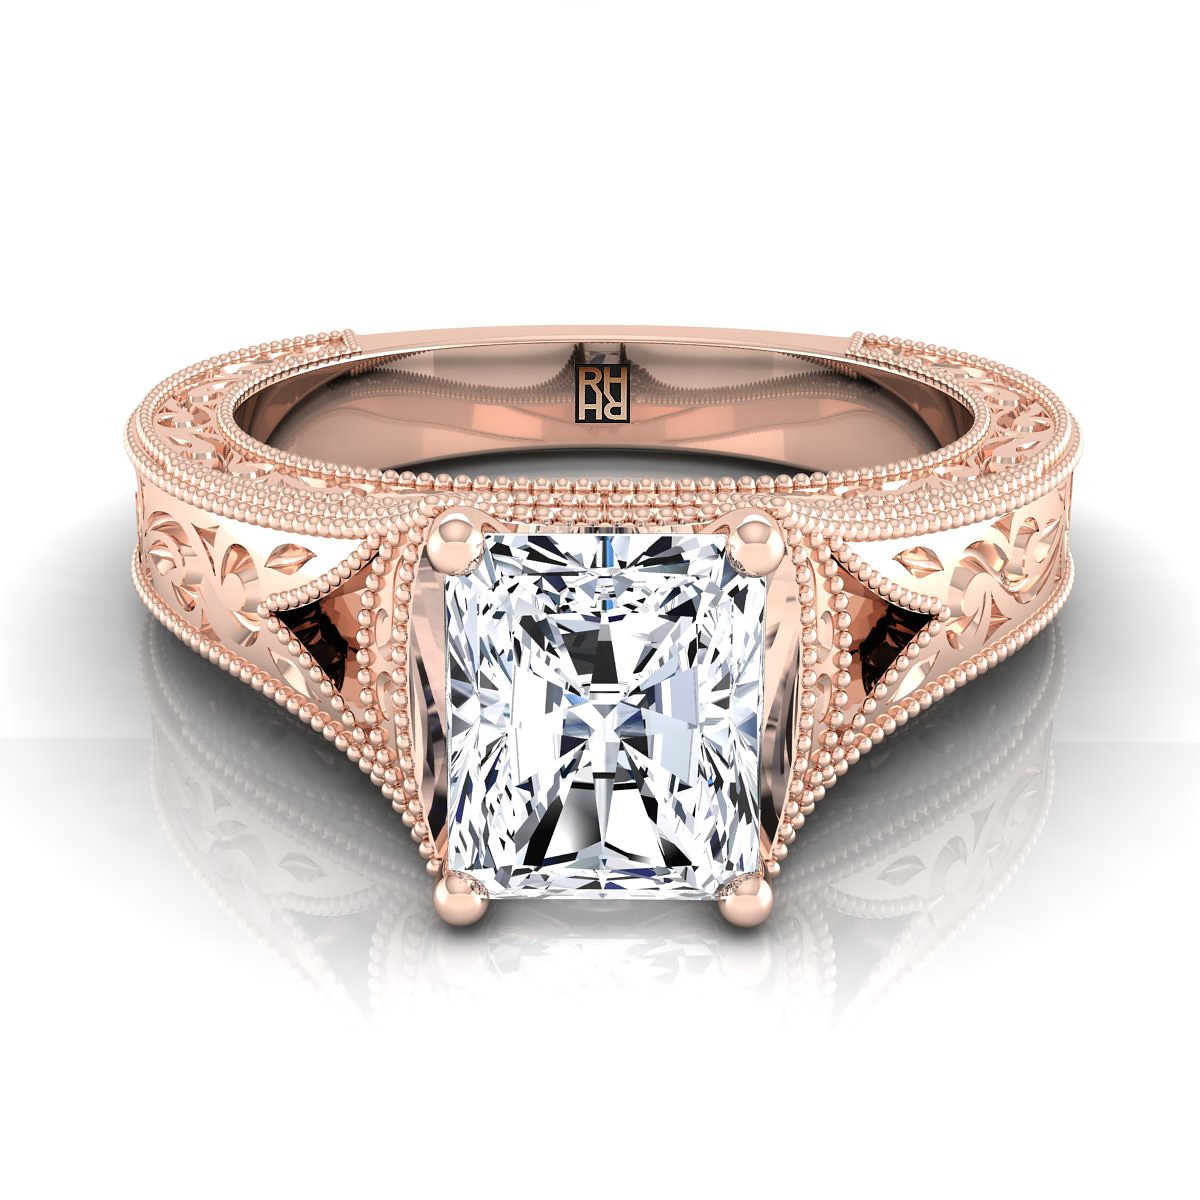 Radiant Cut Antique Inspired Engraved Diamond Engagement Ring With Millgrain Finish In 14k Rose Gold